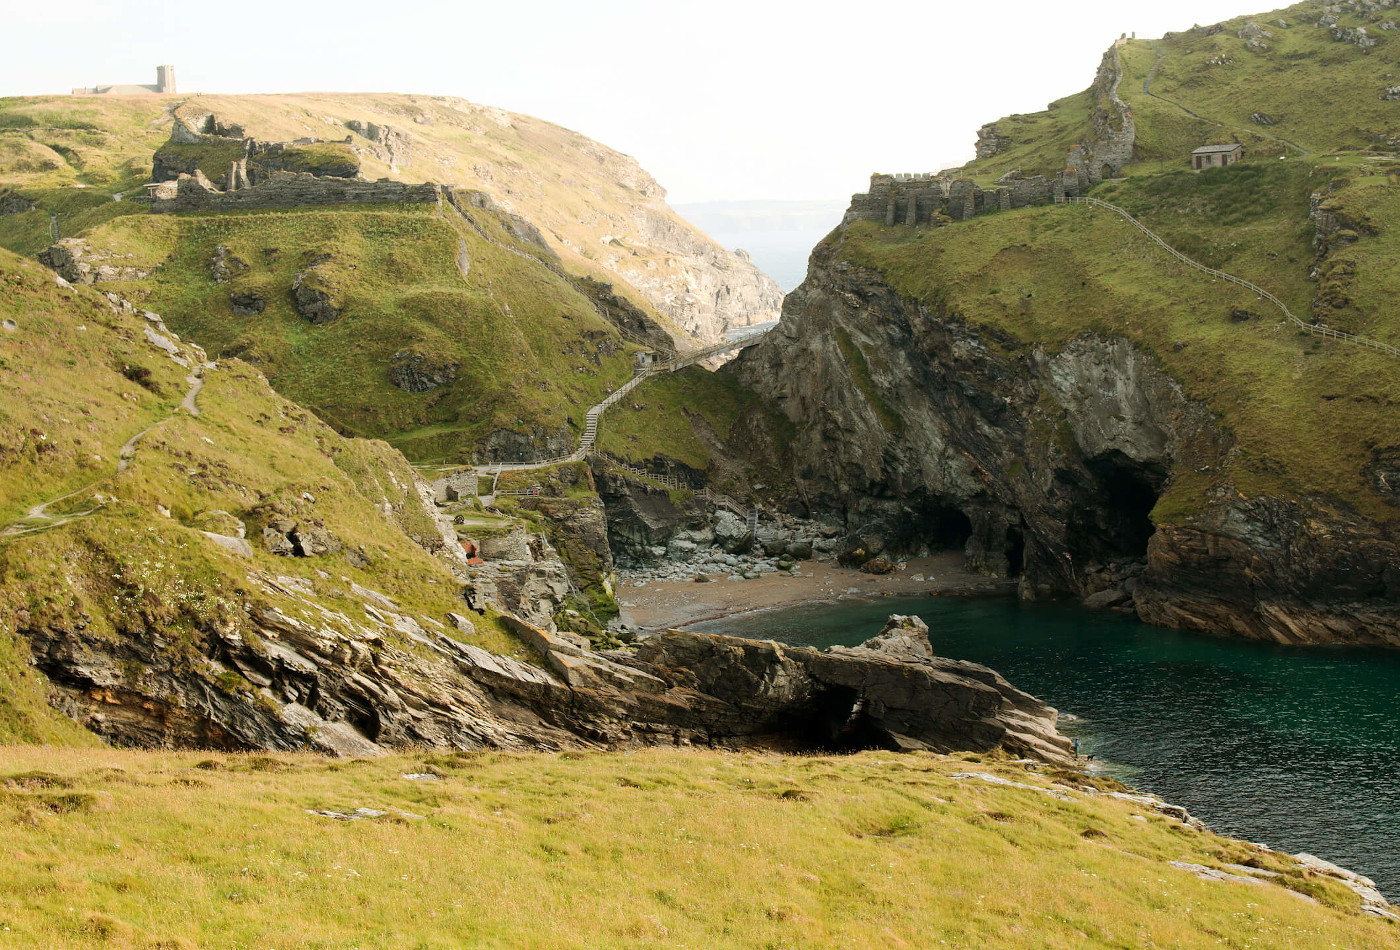 View of the ruins of Tintagel Castle